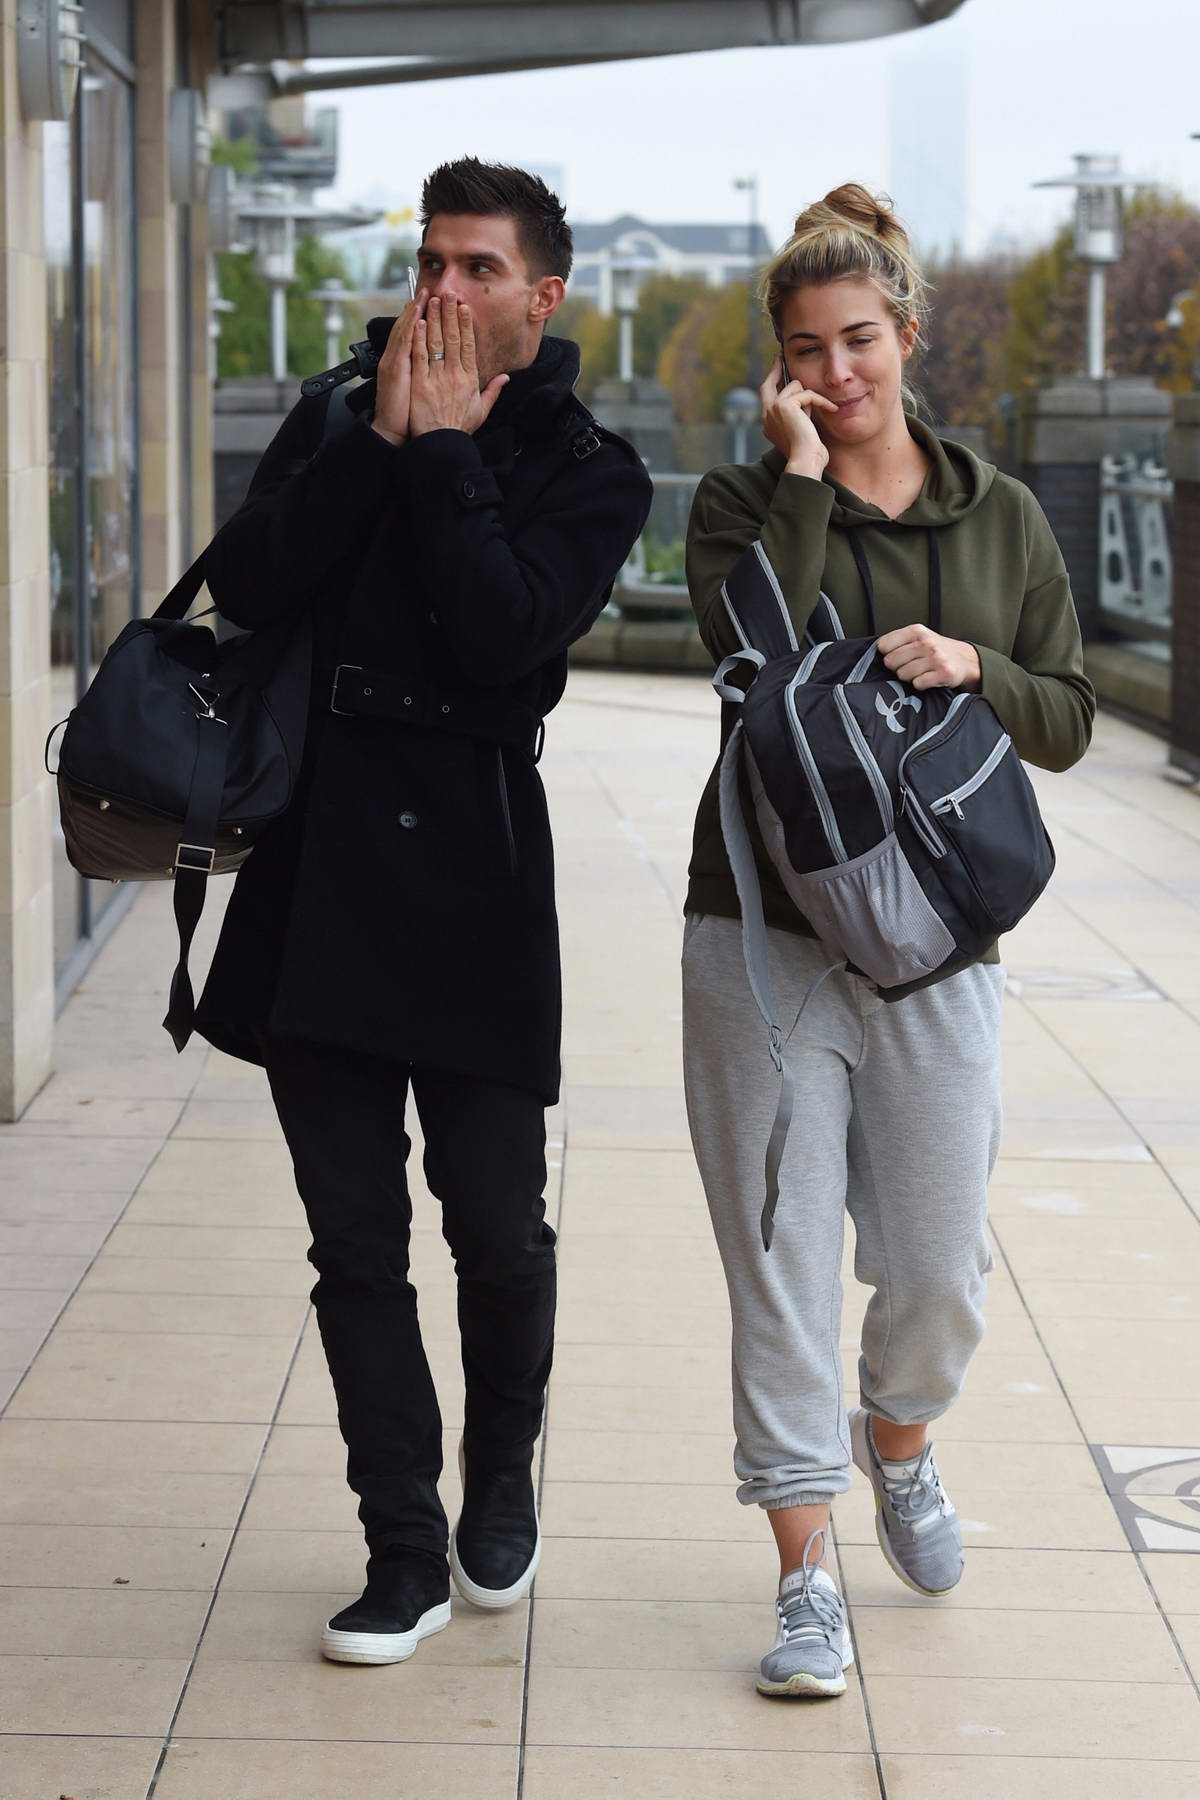 Gemma Atkinson and Aljaz Skorjanec spotted leaving Key 103 radio station in Manchester, UK